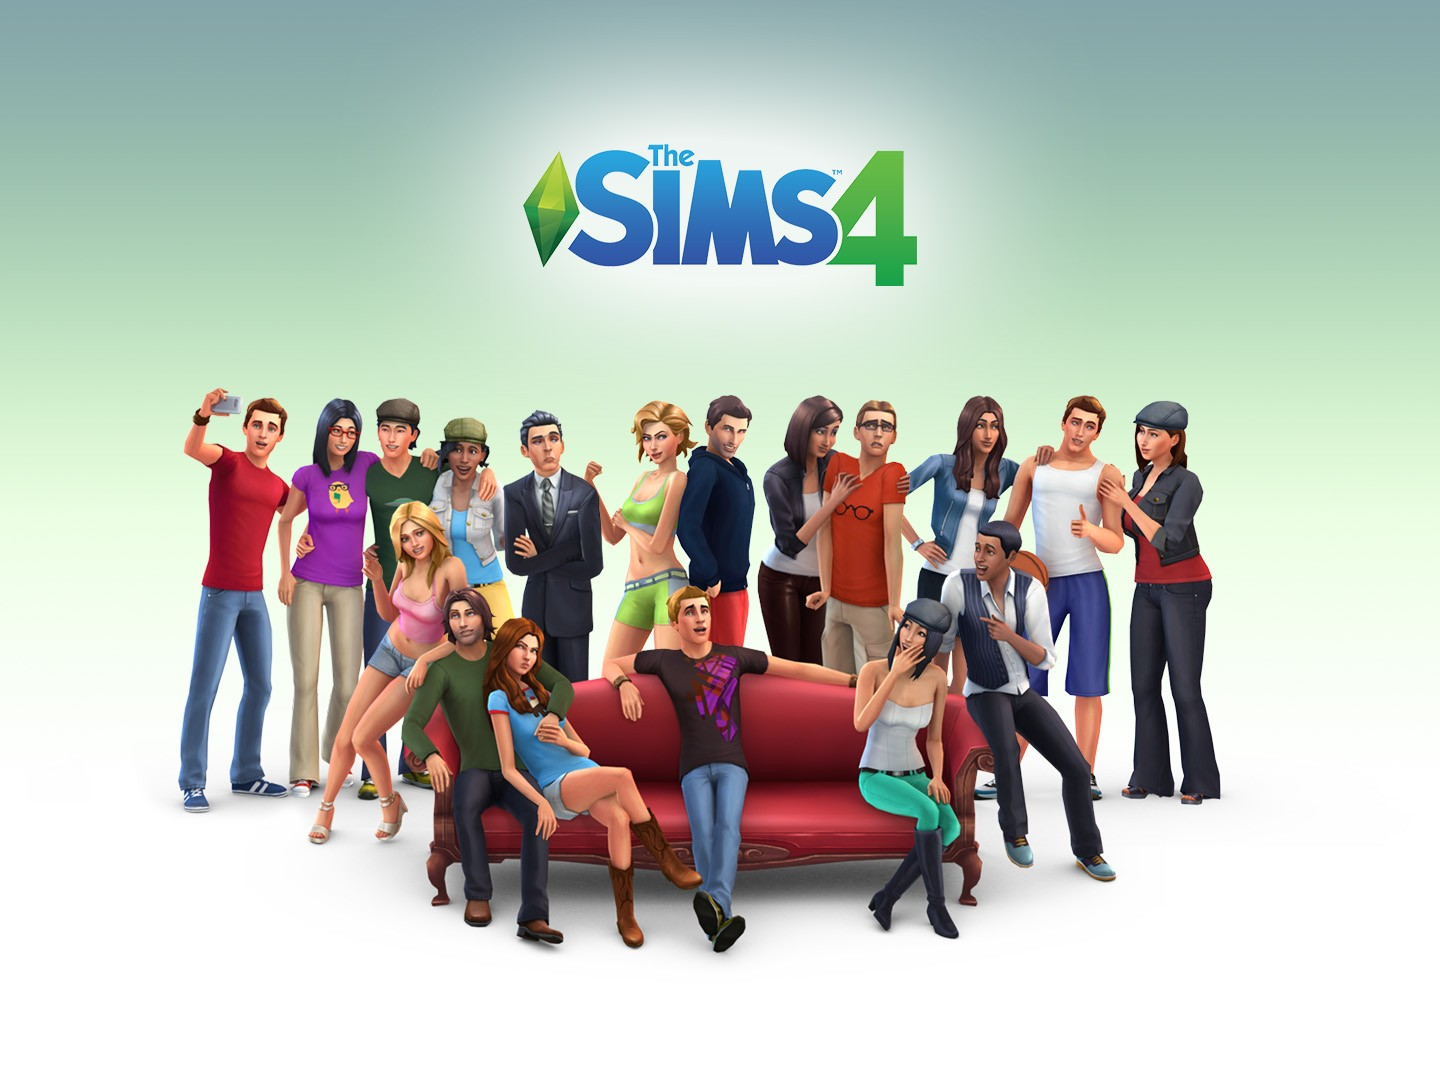 The-Sims-4-Game-Wallpaper-1440x1080